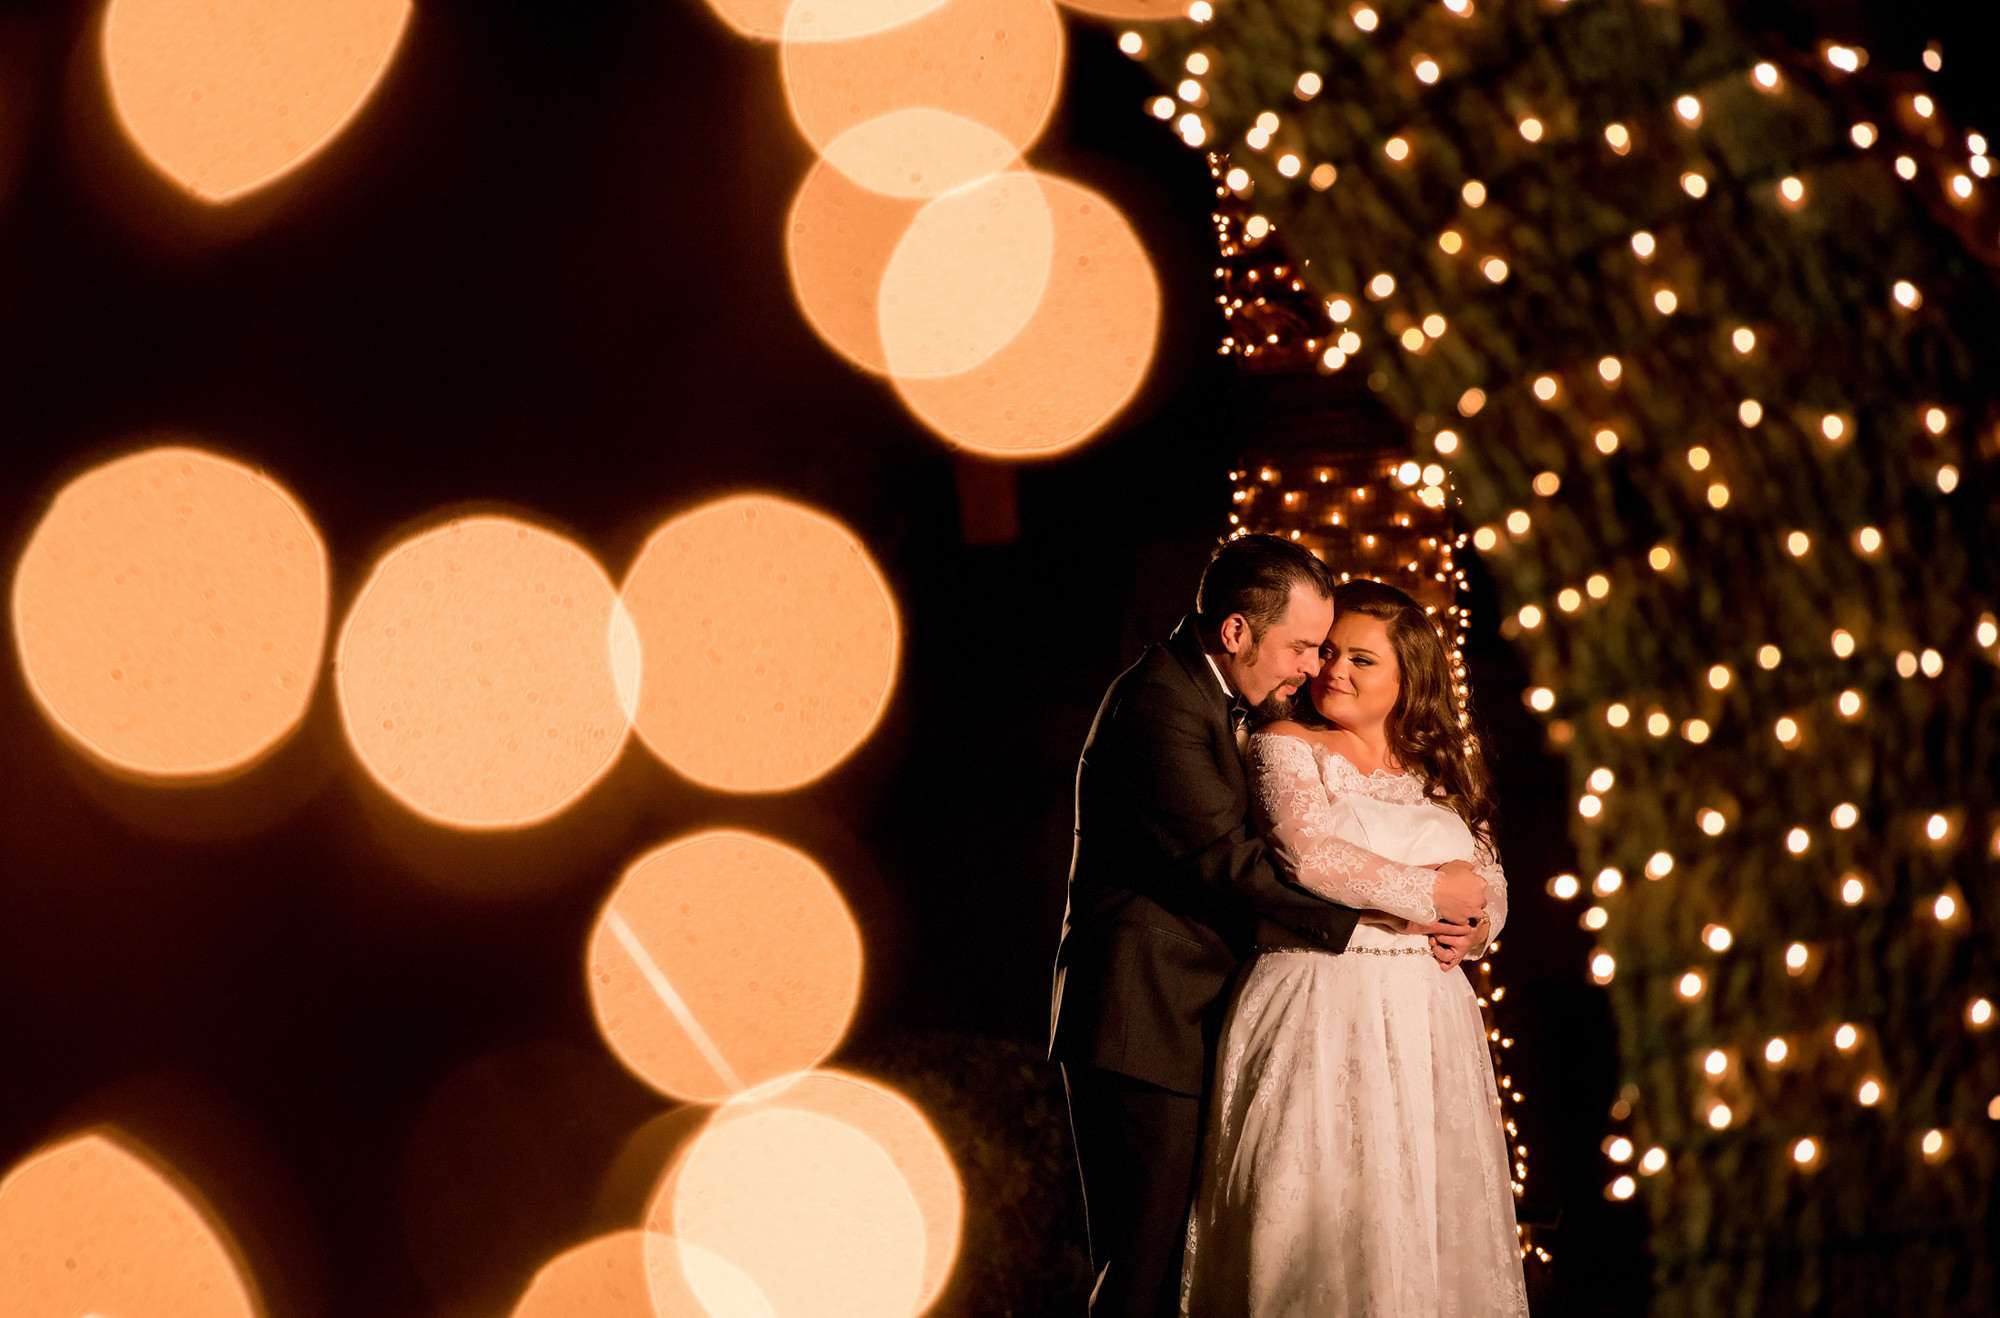 Bokeh lights surround wedding couple - Morgan Lynn photography